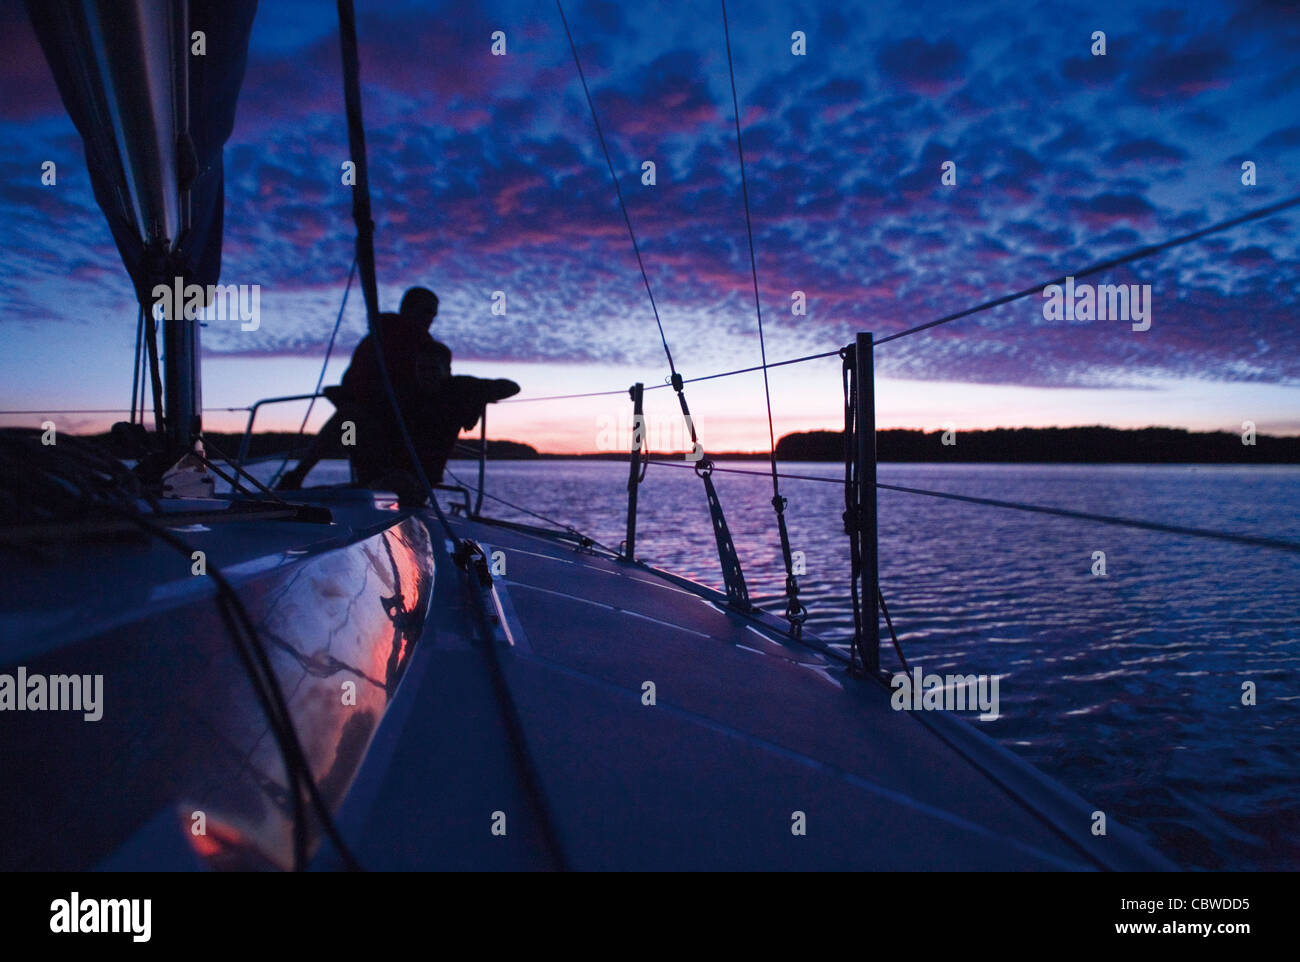 taken at the evening on sailing yacht - Stock Image